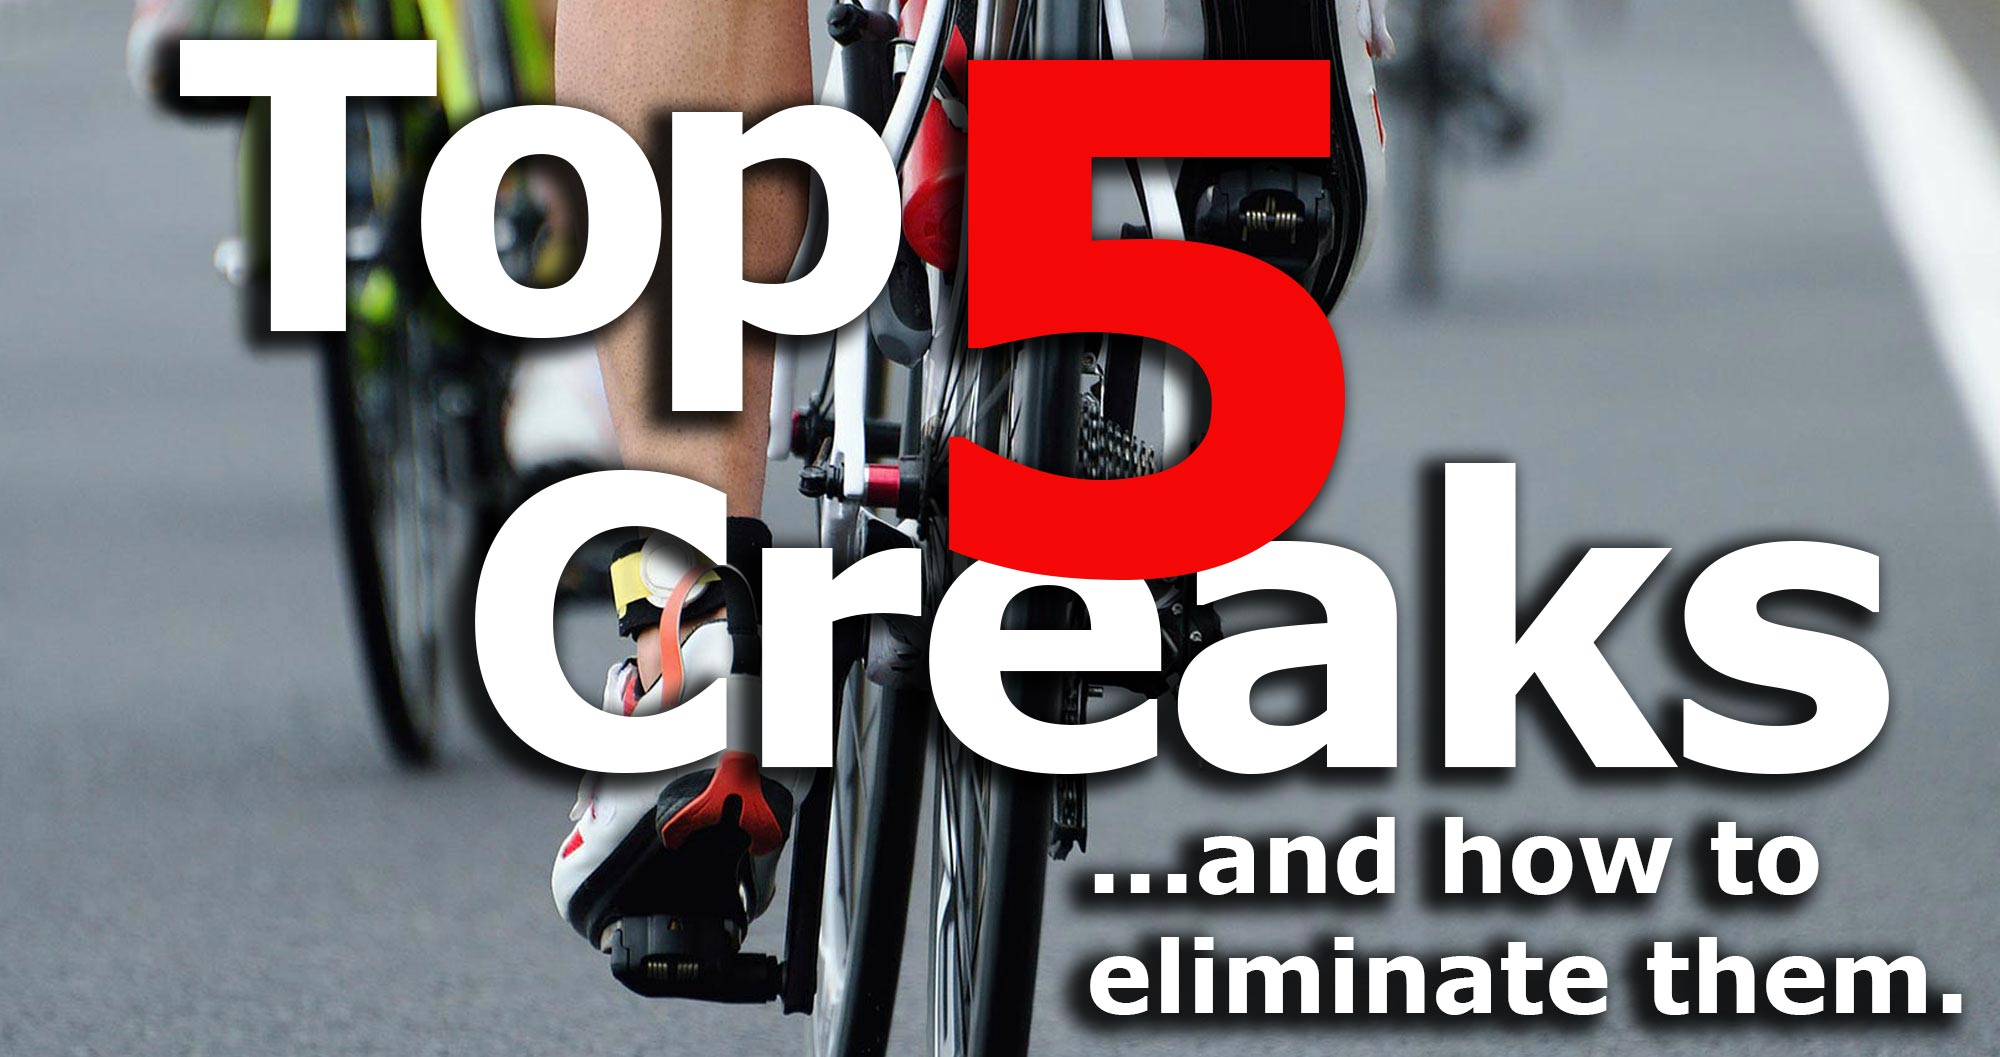 Top 5 Creaks...and how to eliminate them.